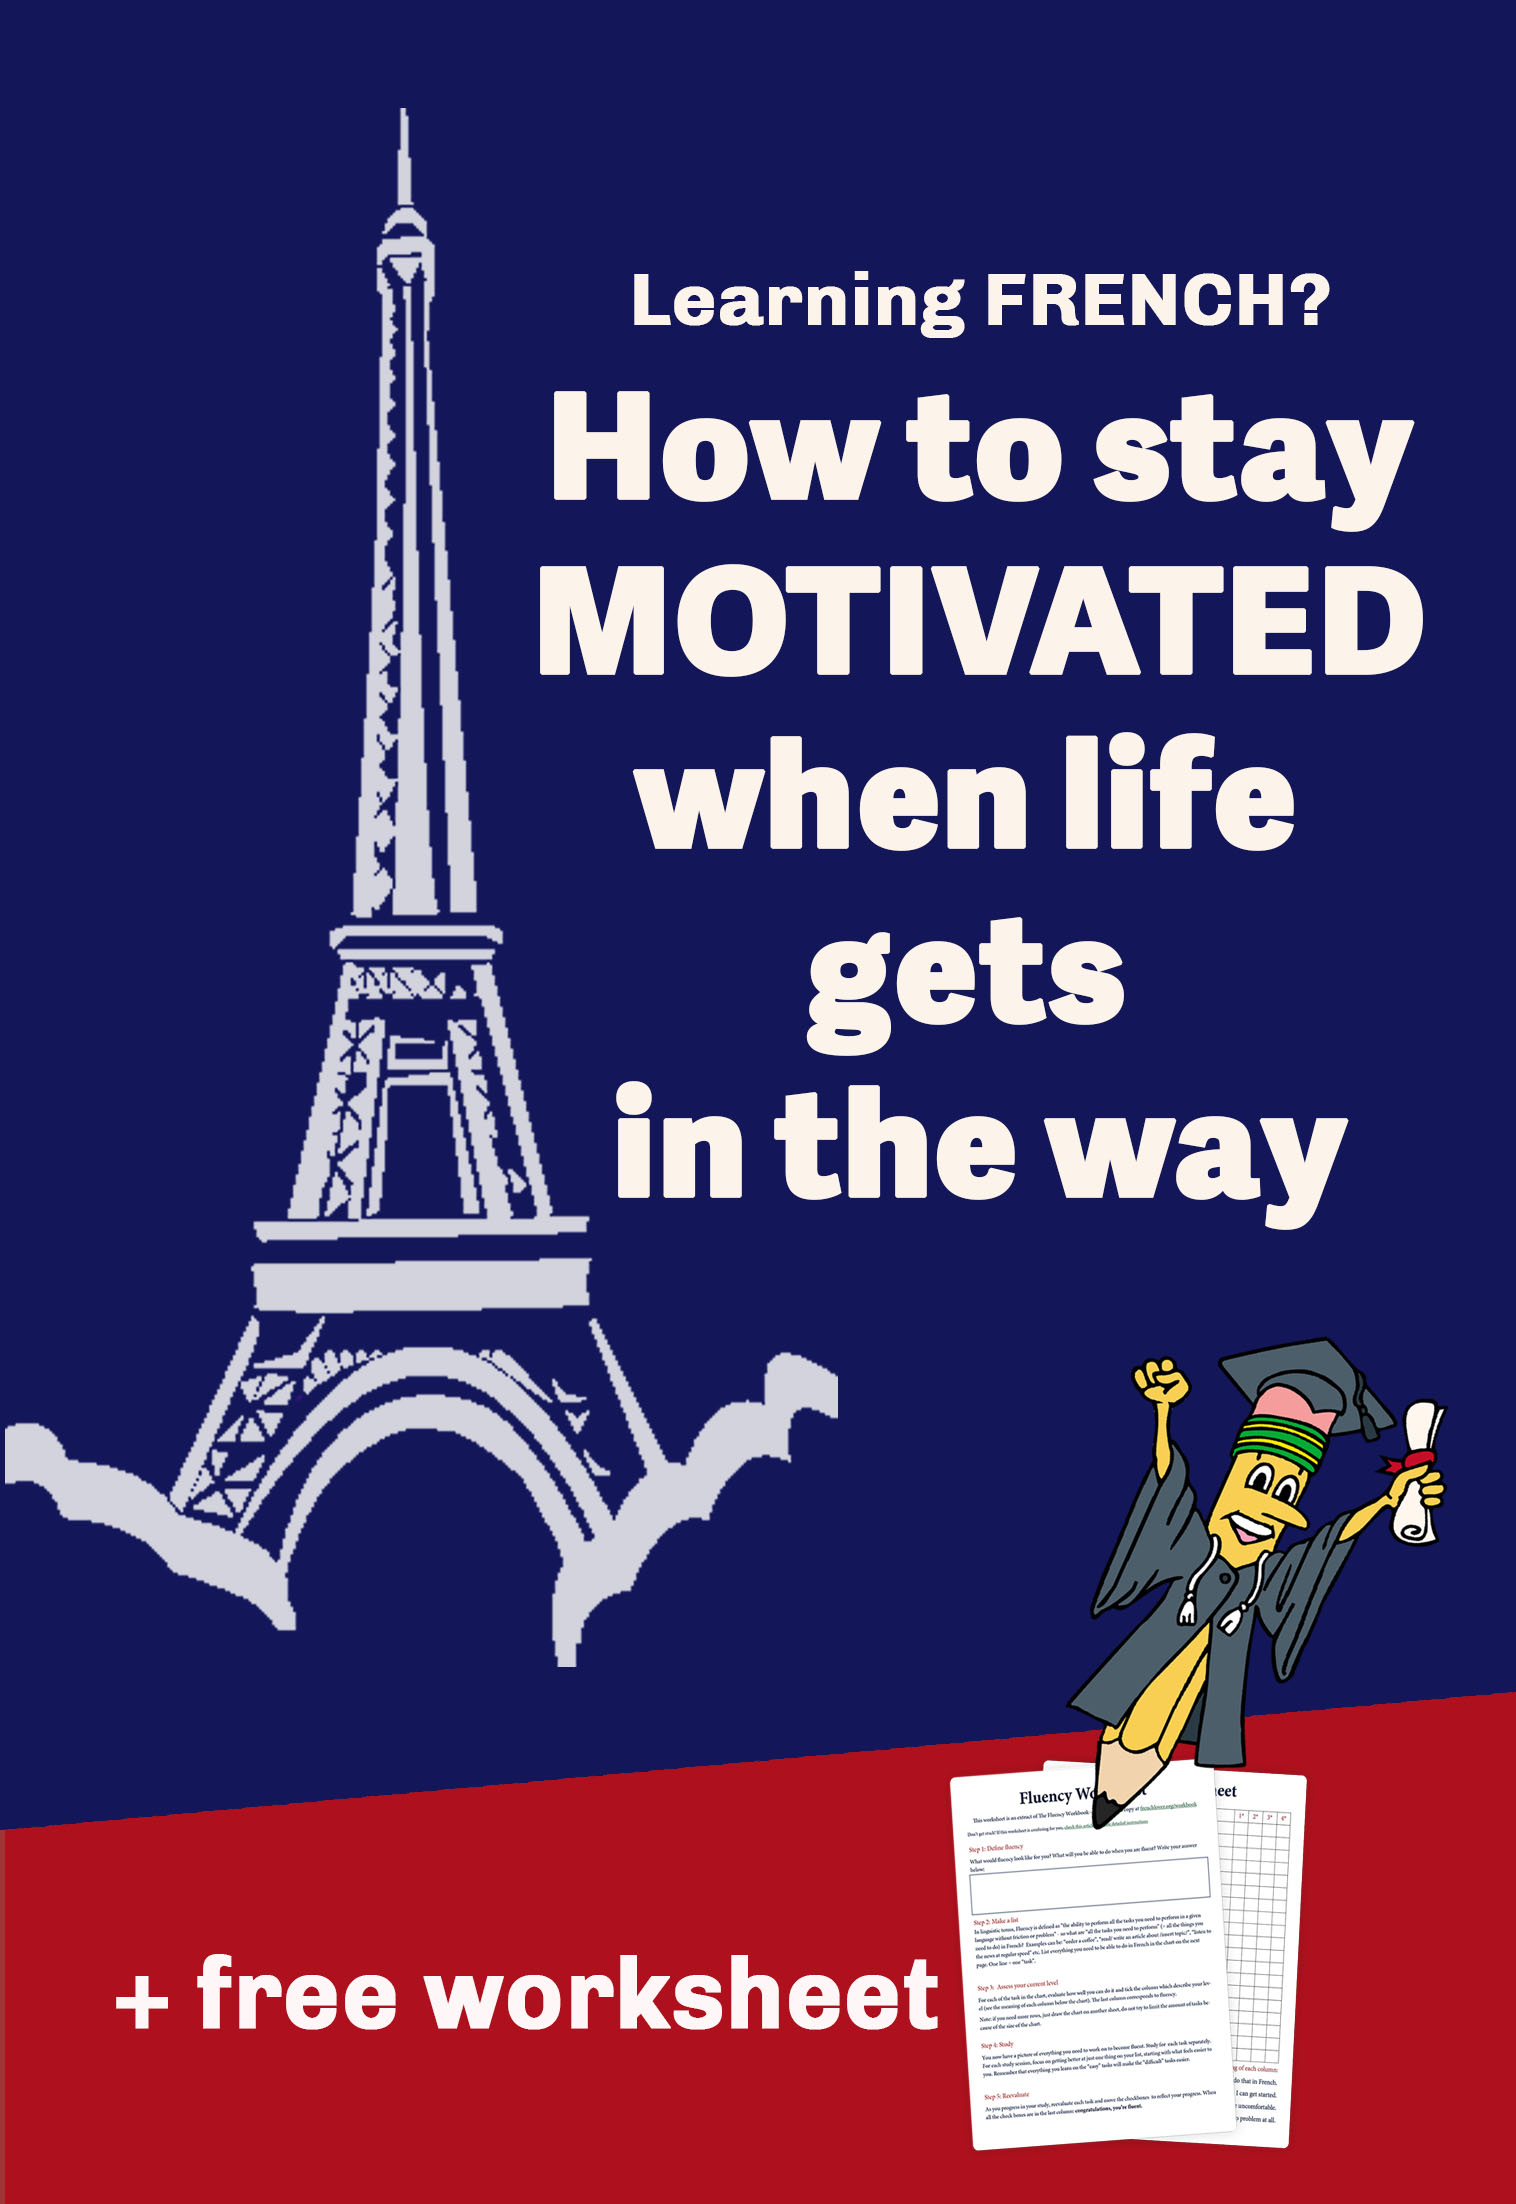 learn French - motivation